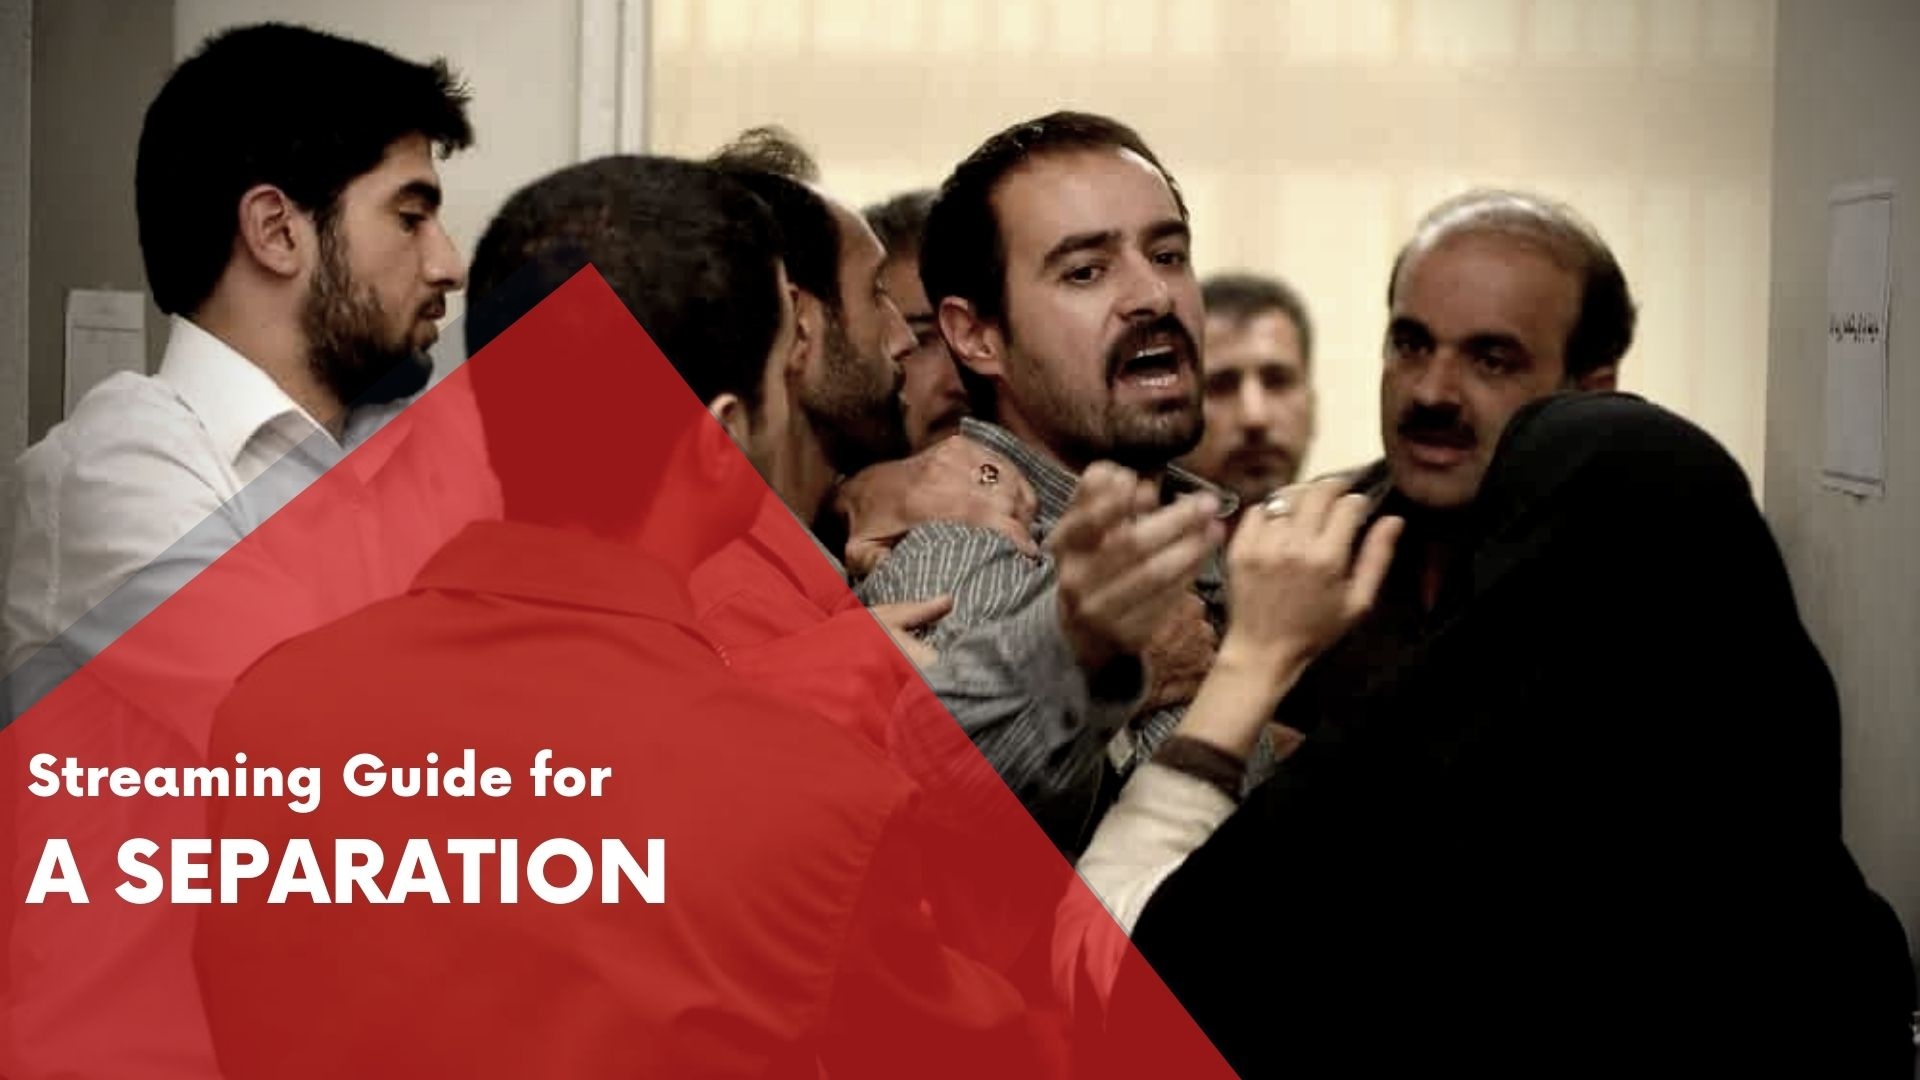 A Separation Streaming Guide